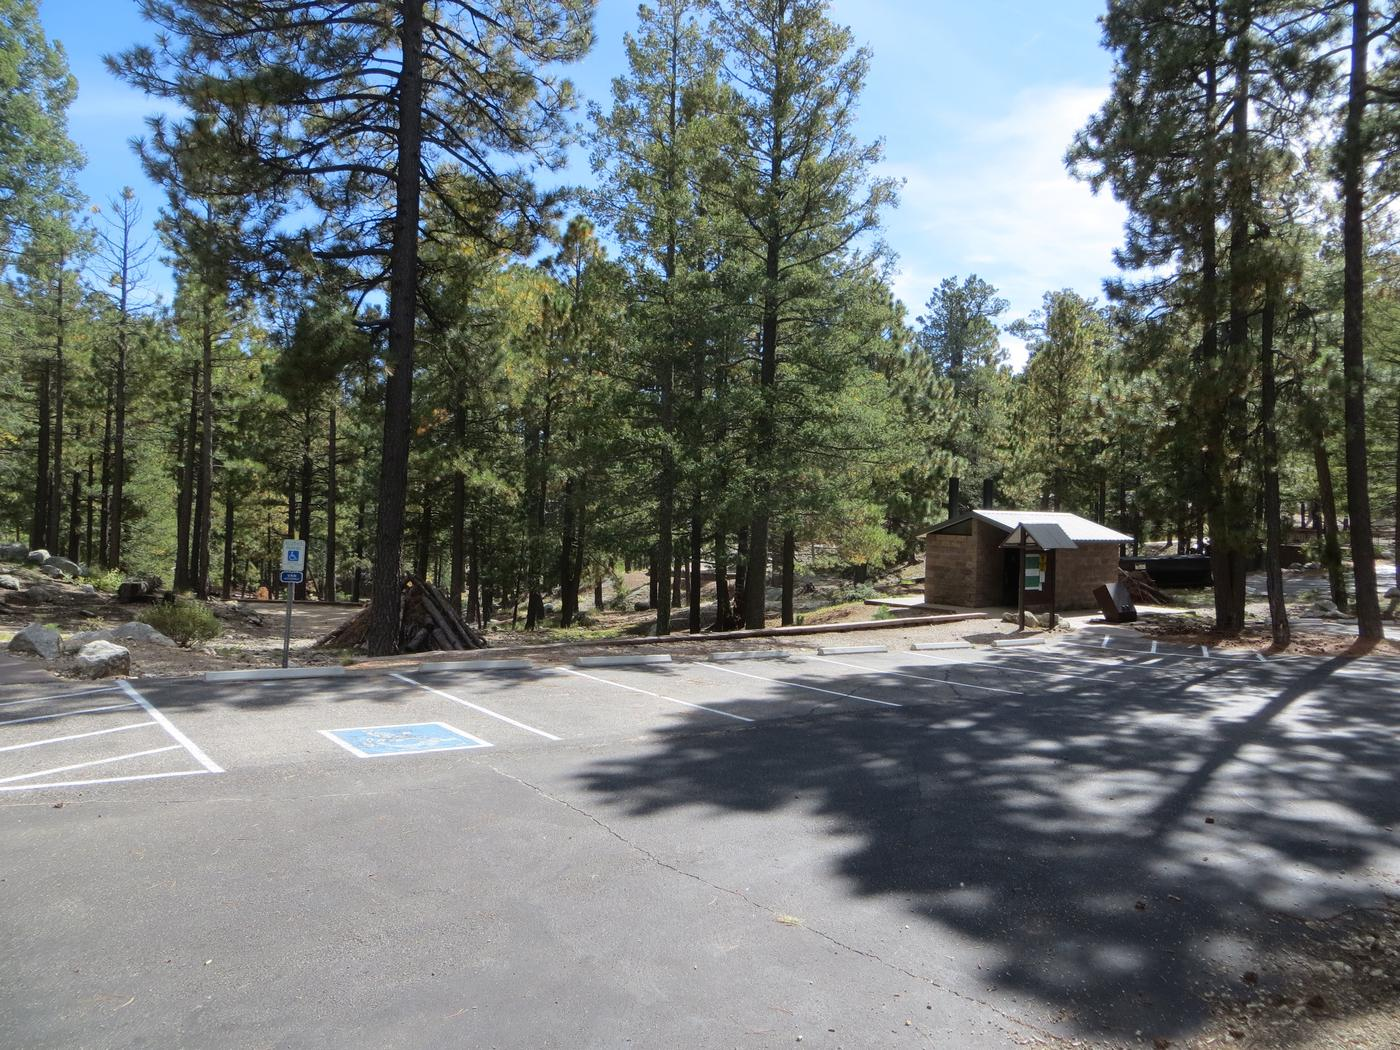 Whitetail Campground Group Site #04 parking lot view and access to the private restroom.